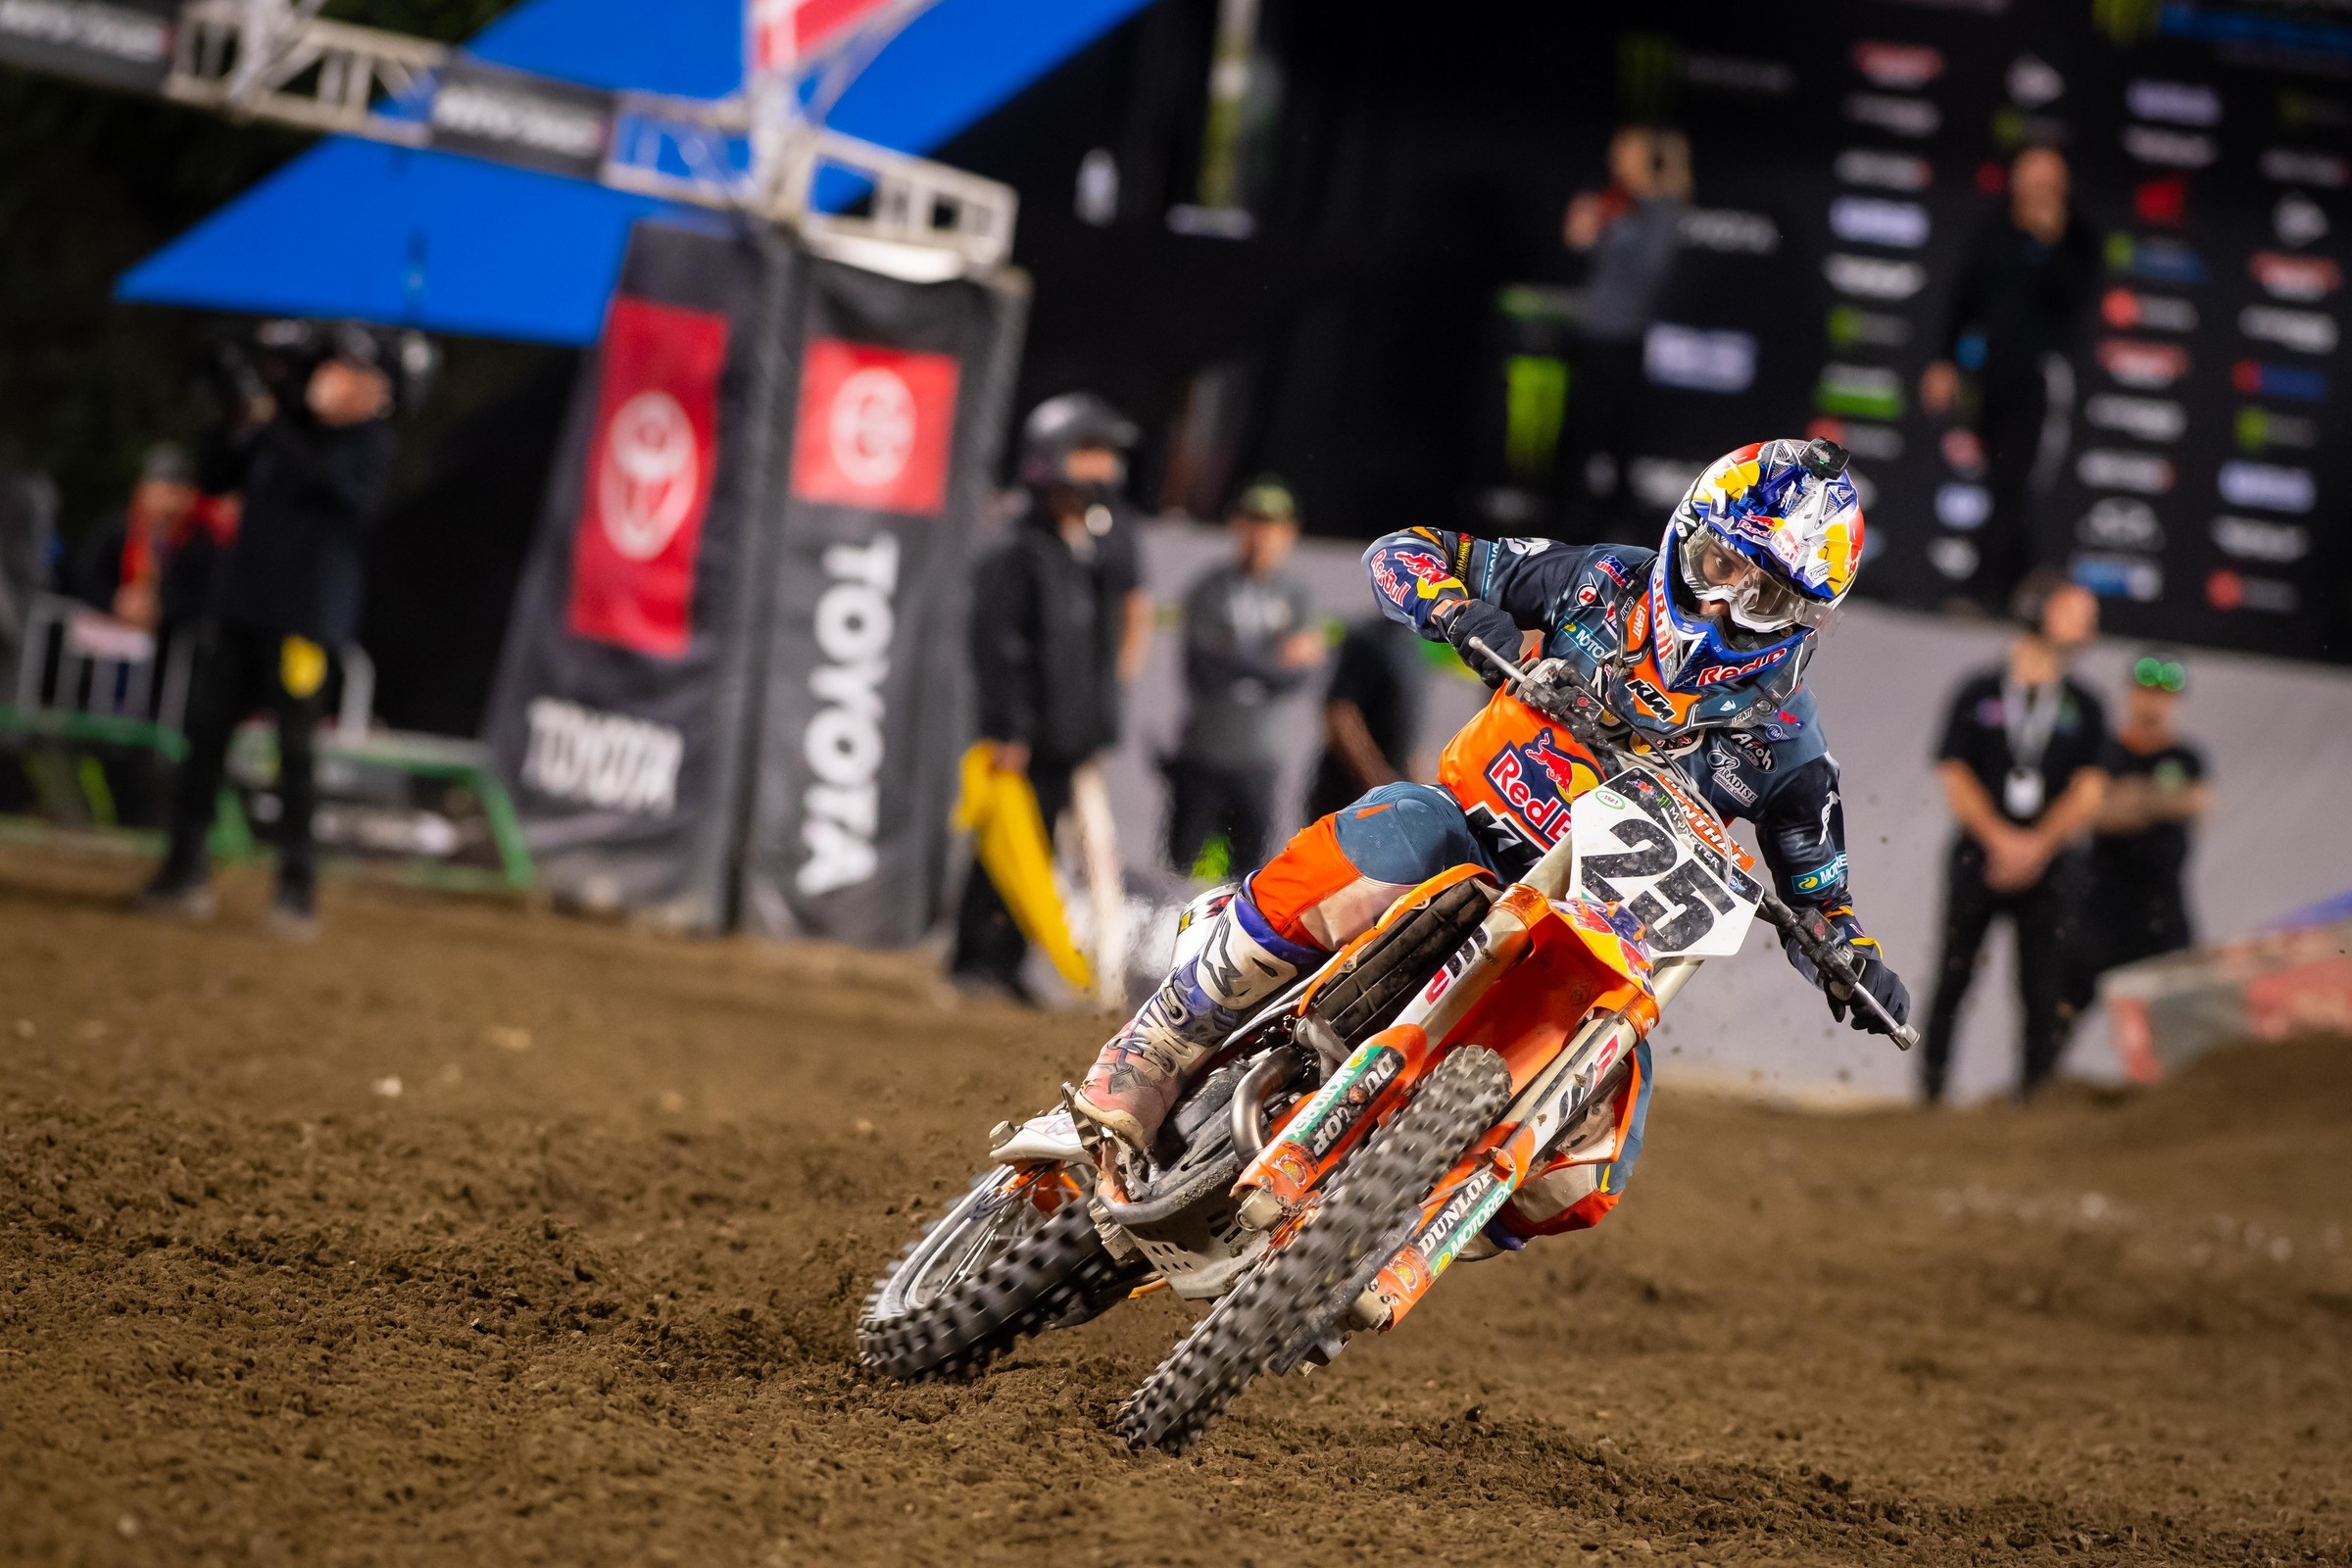 Musquin sits in fourth place in the 450SX points standings and is only seven points behind points leader Ken Roczen.